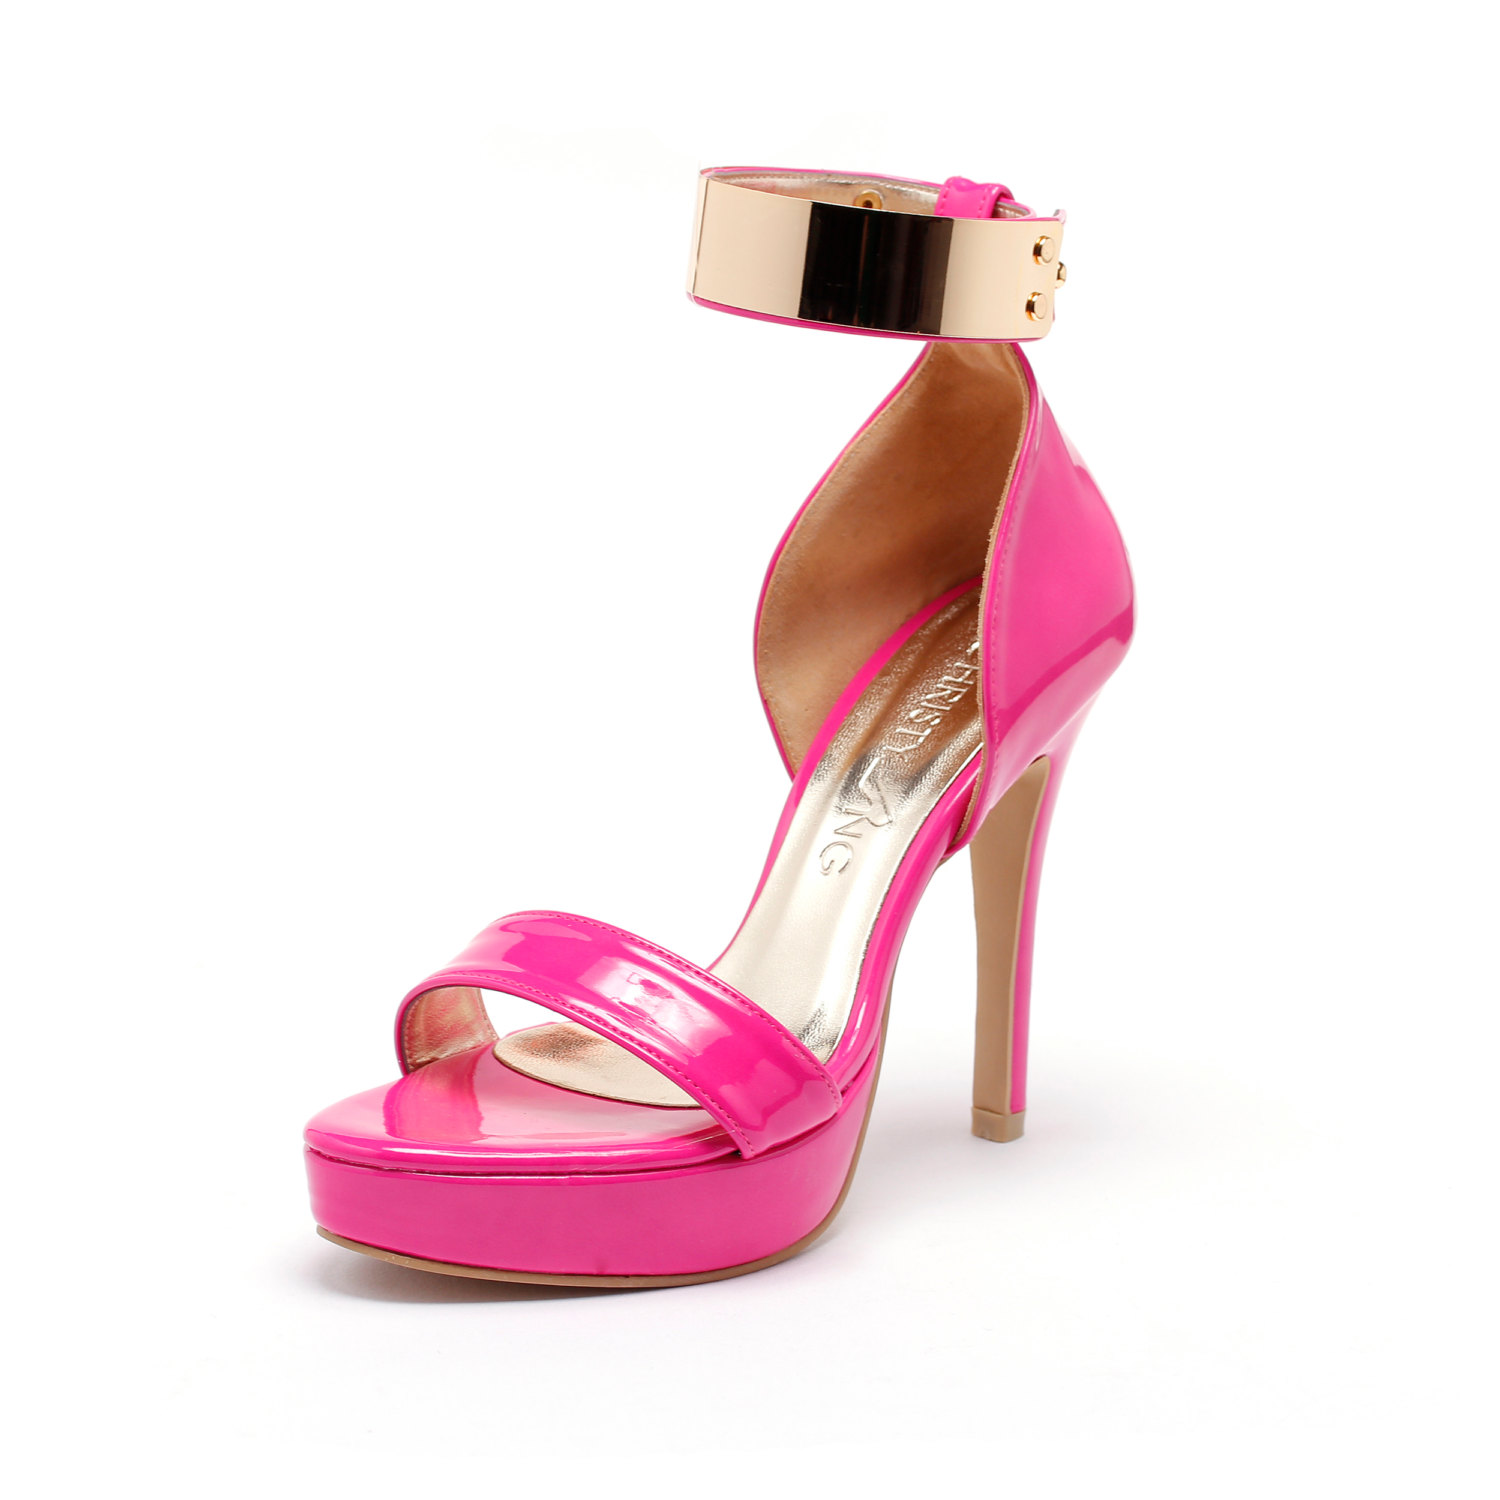 Fuschia Pink High Heel Shoes